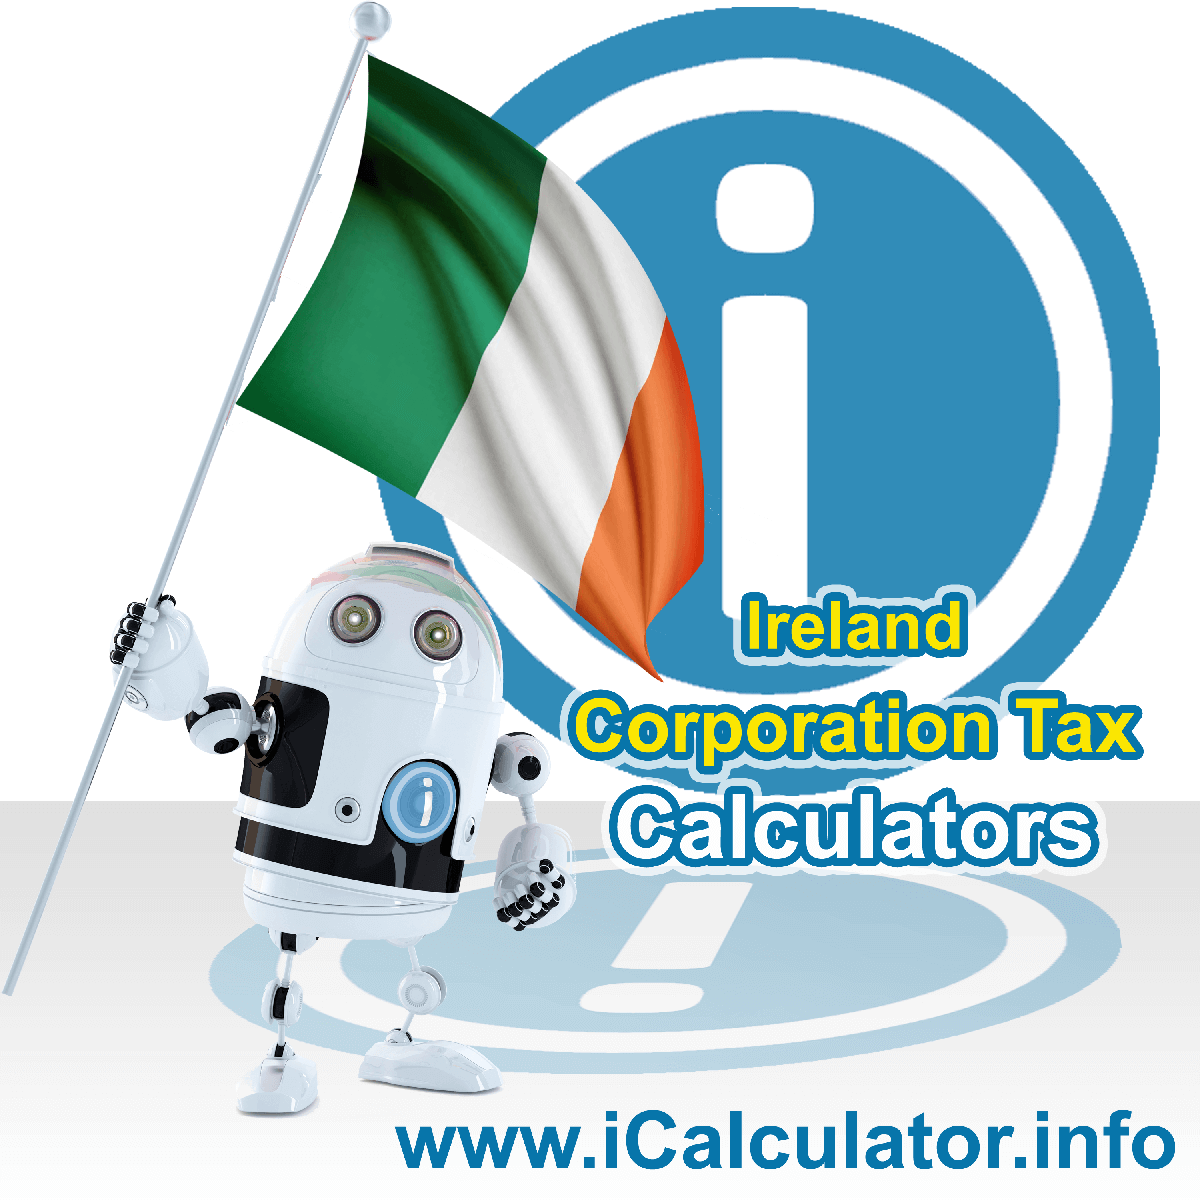 Ireland Corporation Tax Calculator. This image shows the Ireland flag and information relating to the corporation tax rate formula used for calculating Corporation Tax in Ireland using the Ireland Corporation Tax Calculator in 2020